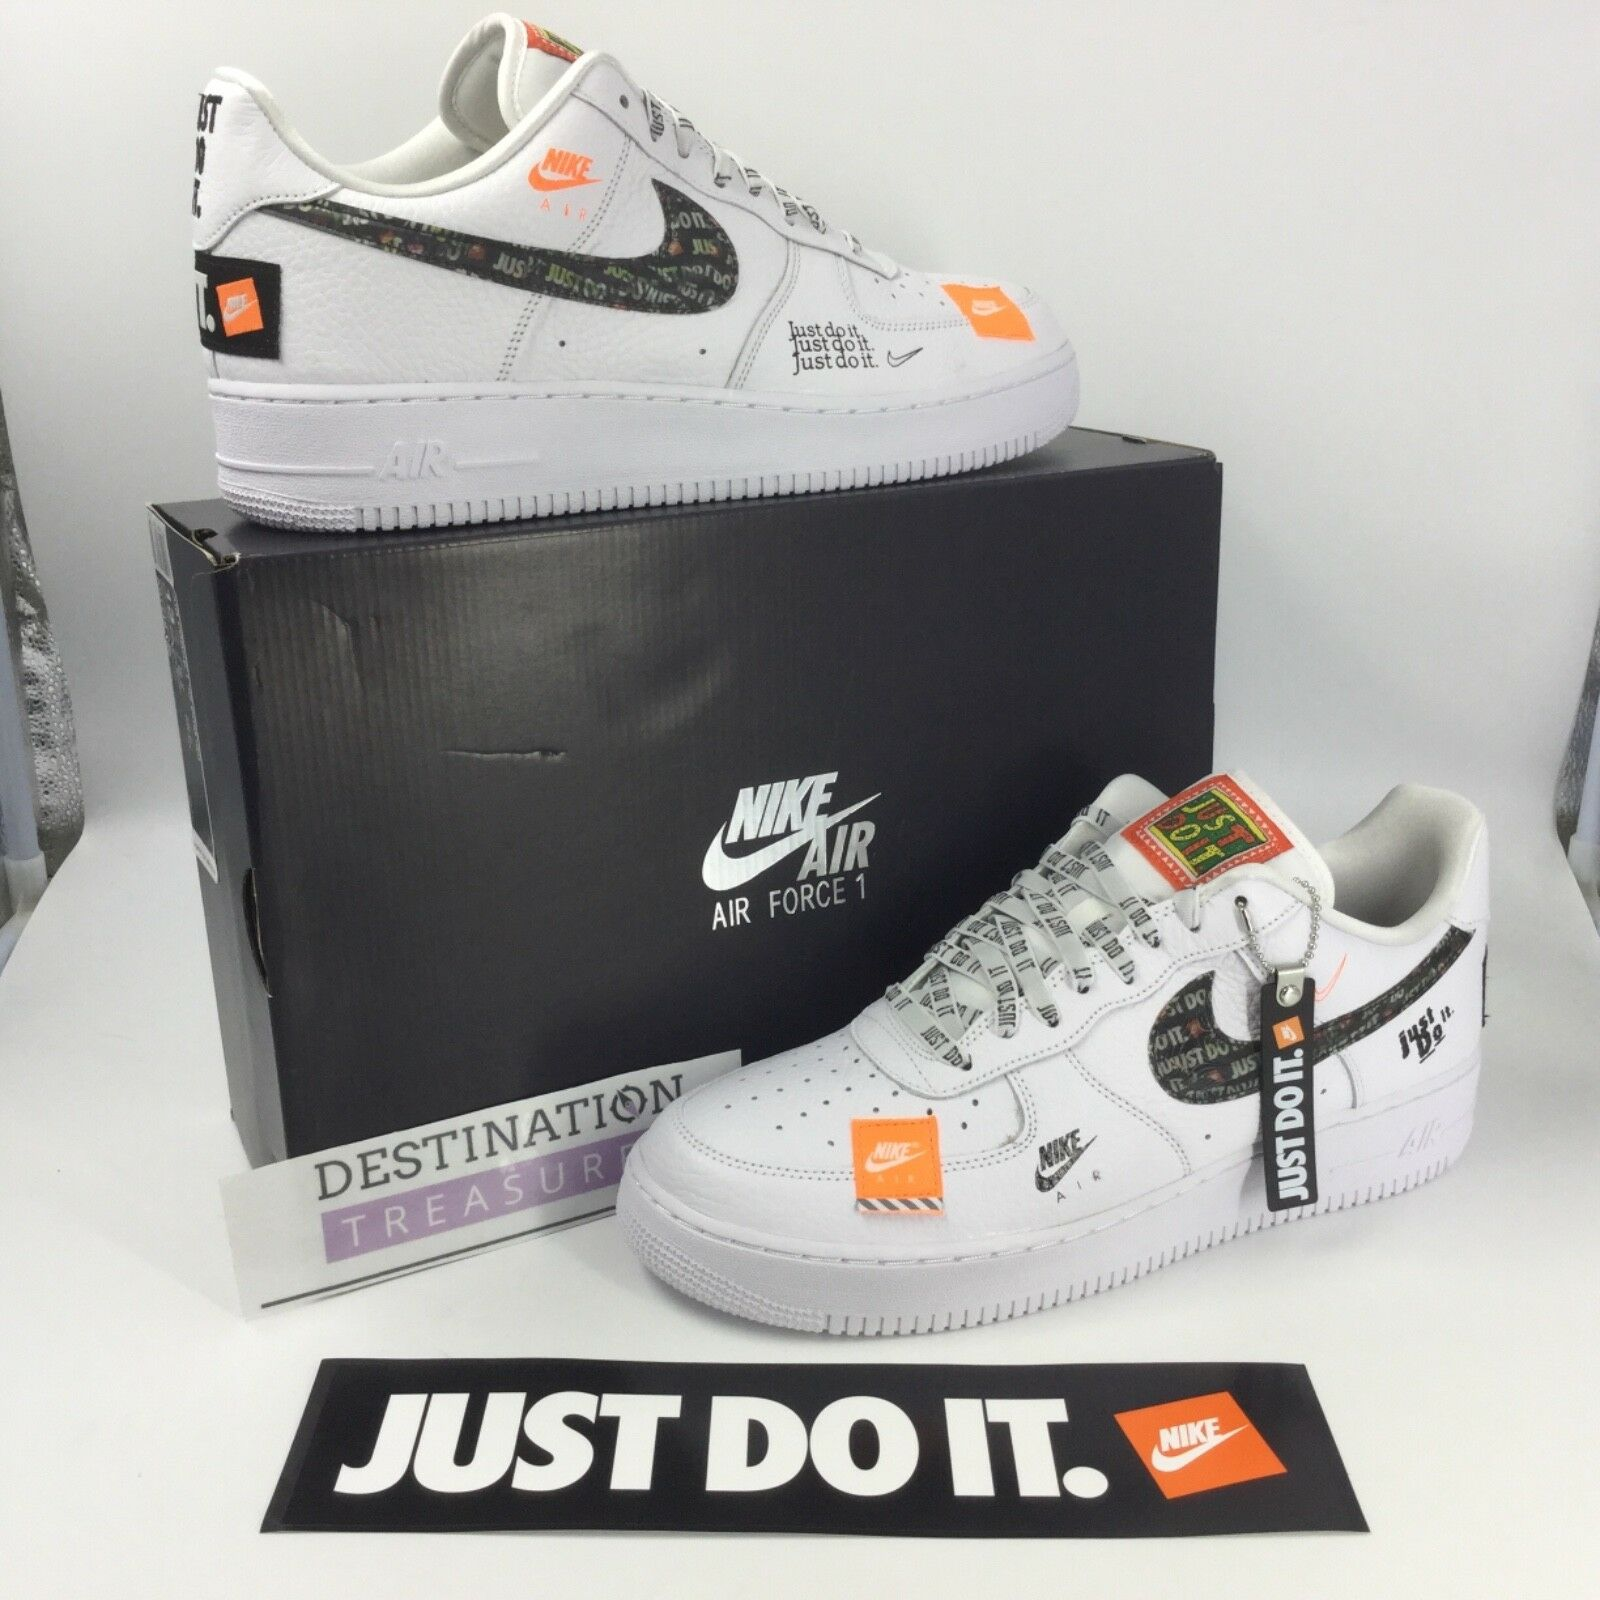 Nike Air Force 1 AF1 Sneakers JUST DO IT White Blk Orange Men 13 Keychain JDI Casual wild